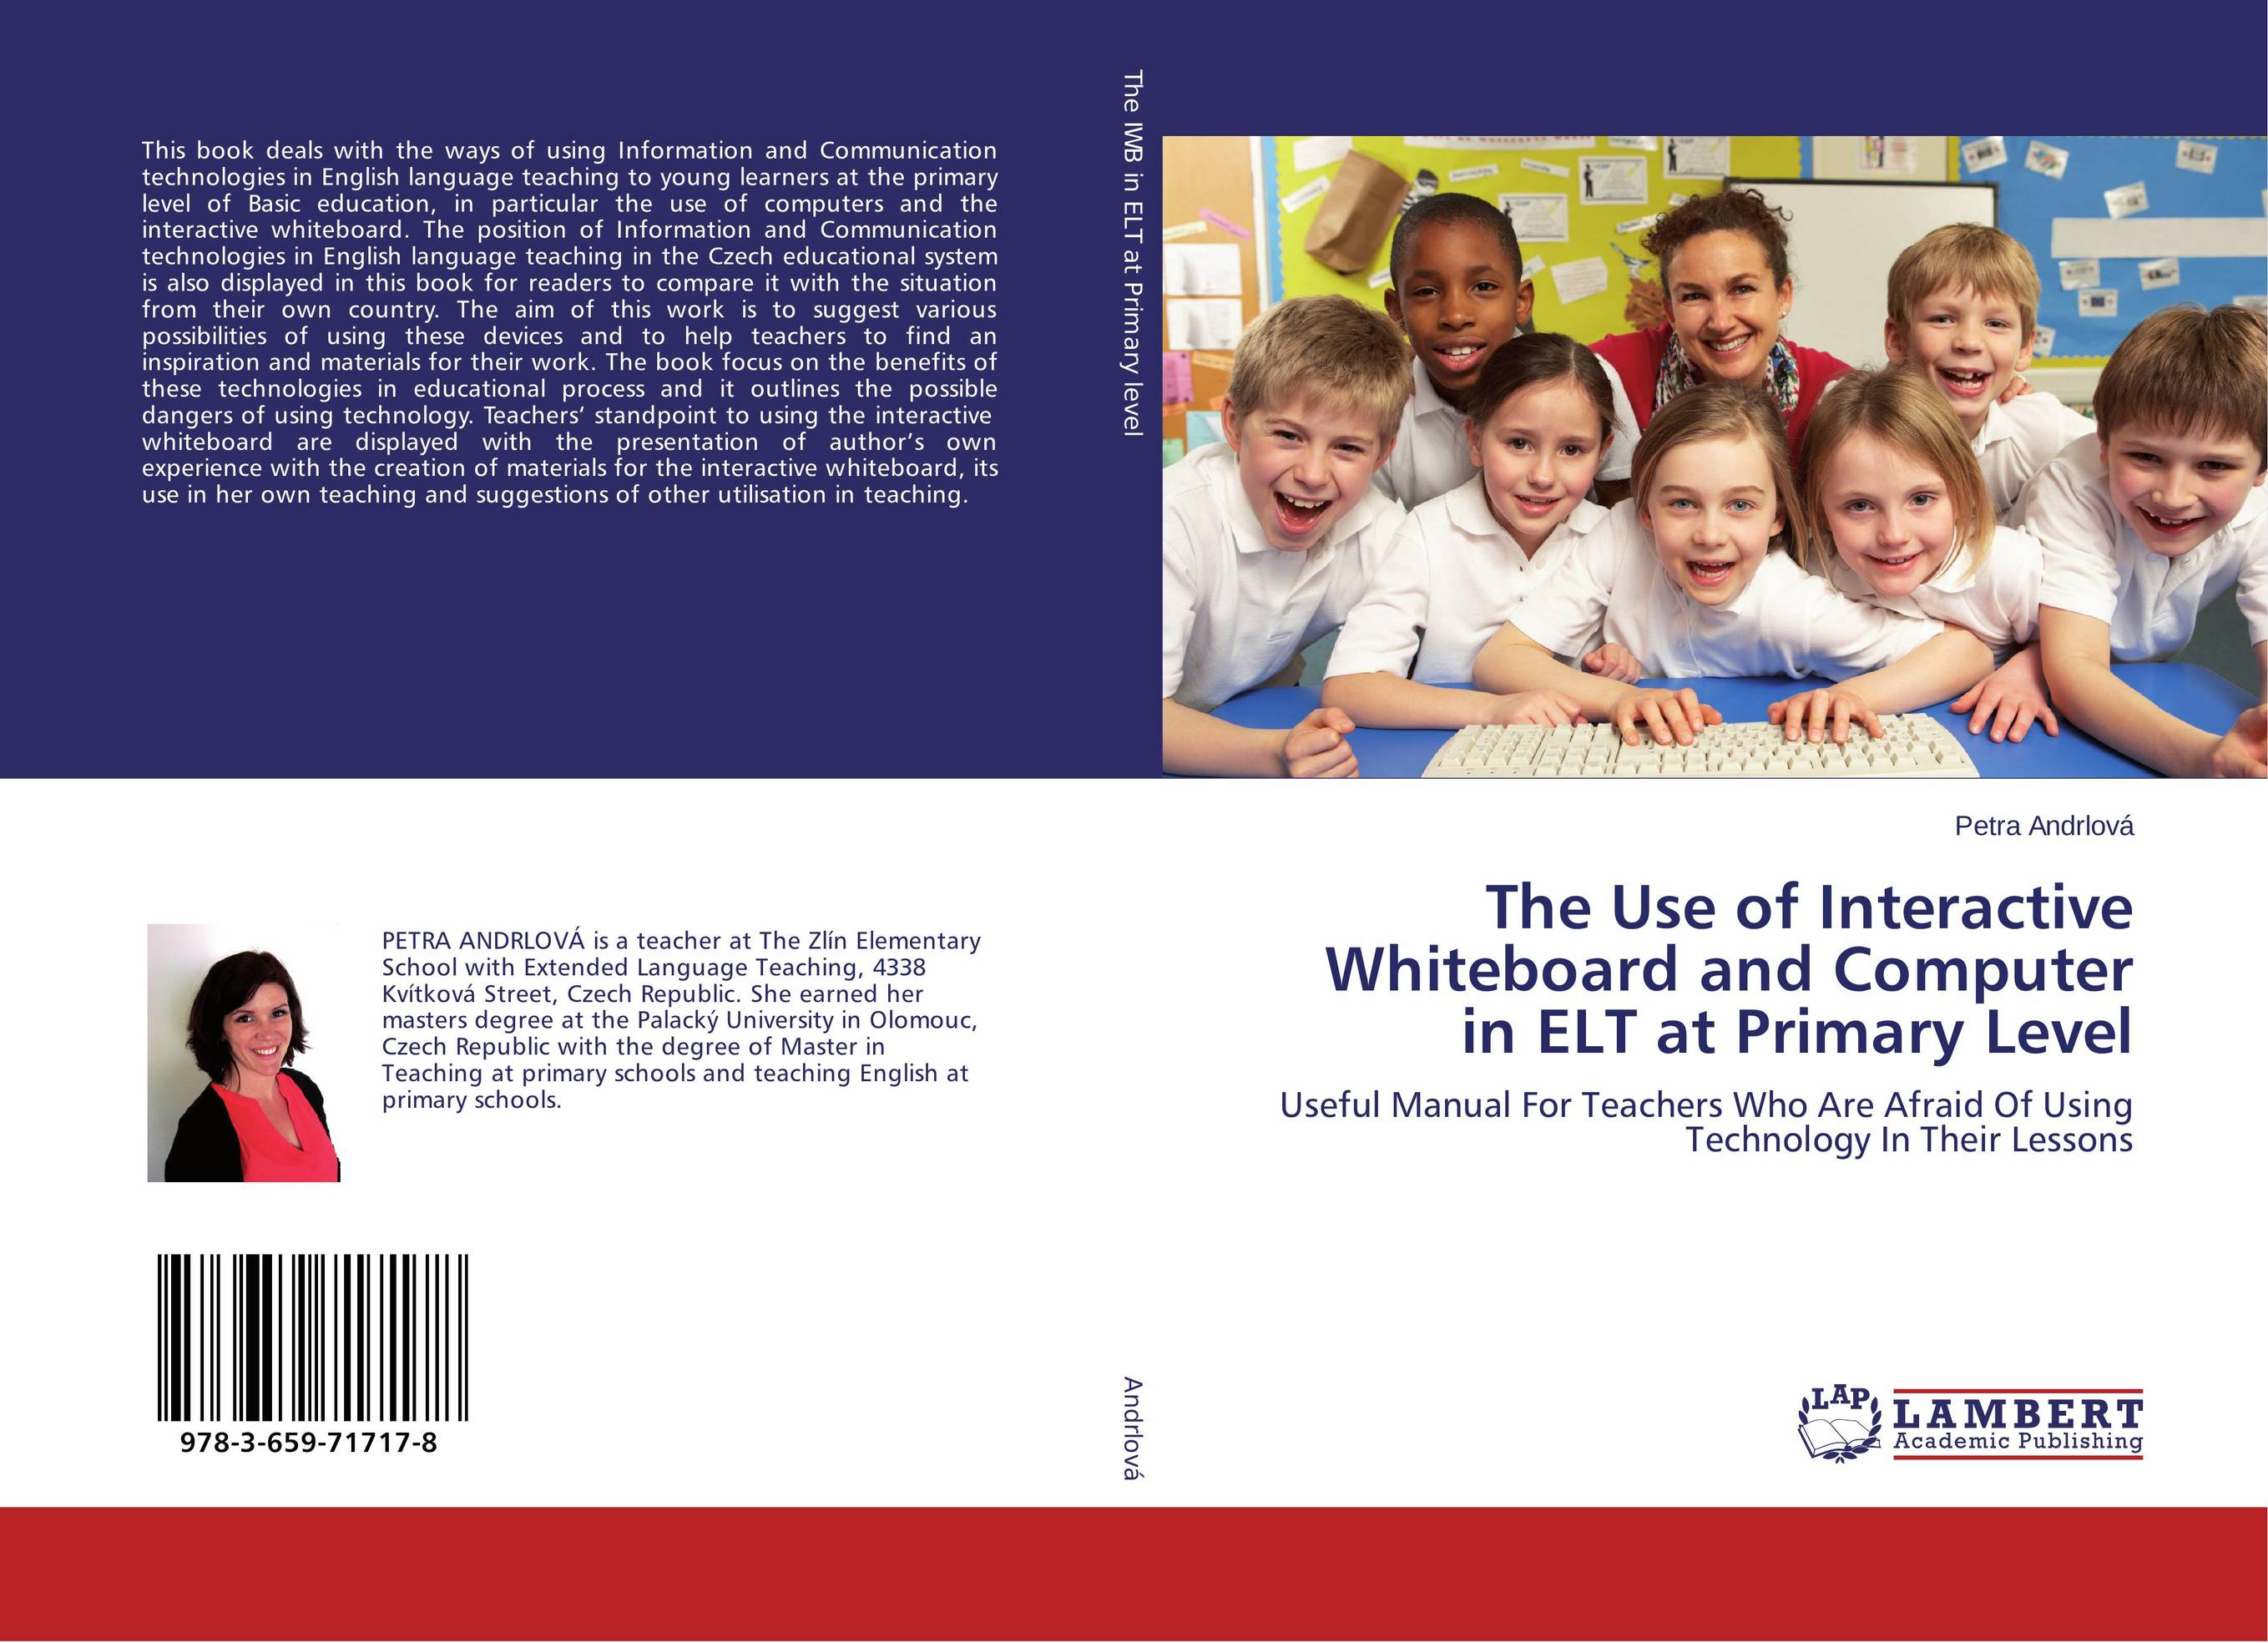 the application of ict in teaching and learning education essay The roles of information communication technologies in education review article with emphasis to the computer and internet  teaching methods, learning approaches, scientific research, and in accessing information therefore, this review article discusses  the benefits of ict in education the uses of ict is making major.